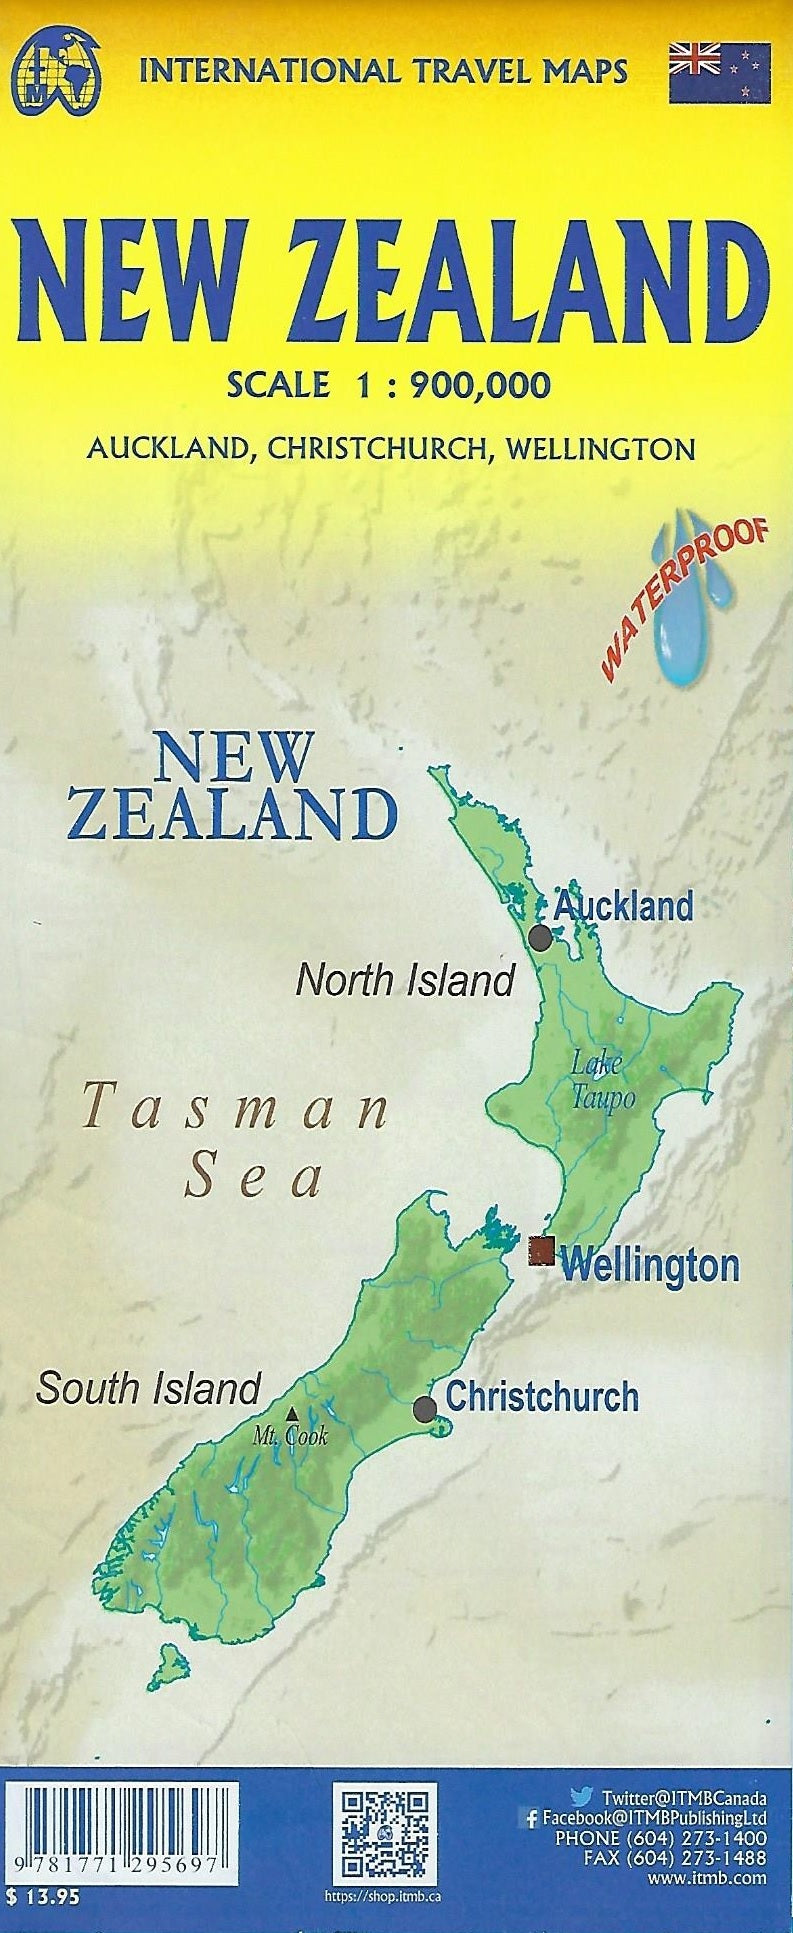 New Zealand ITM Travel Map 9e